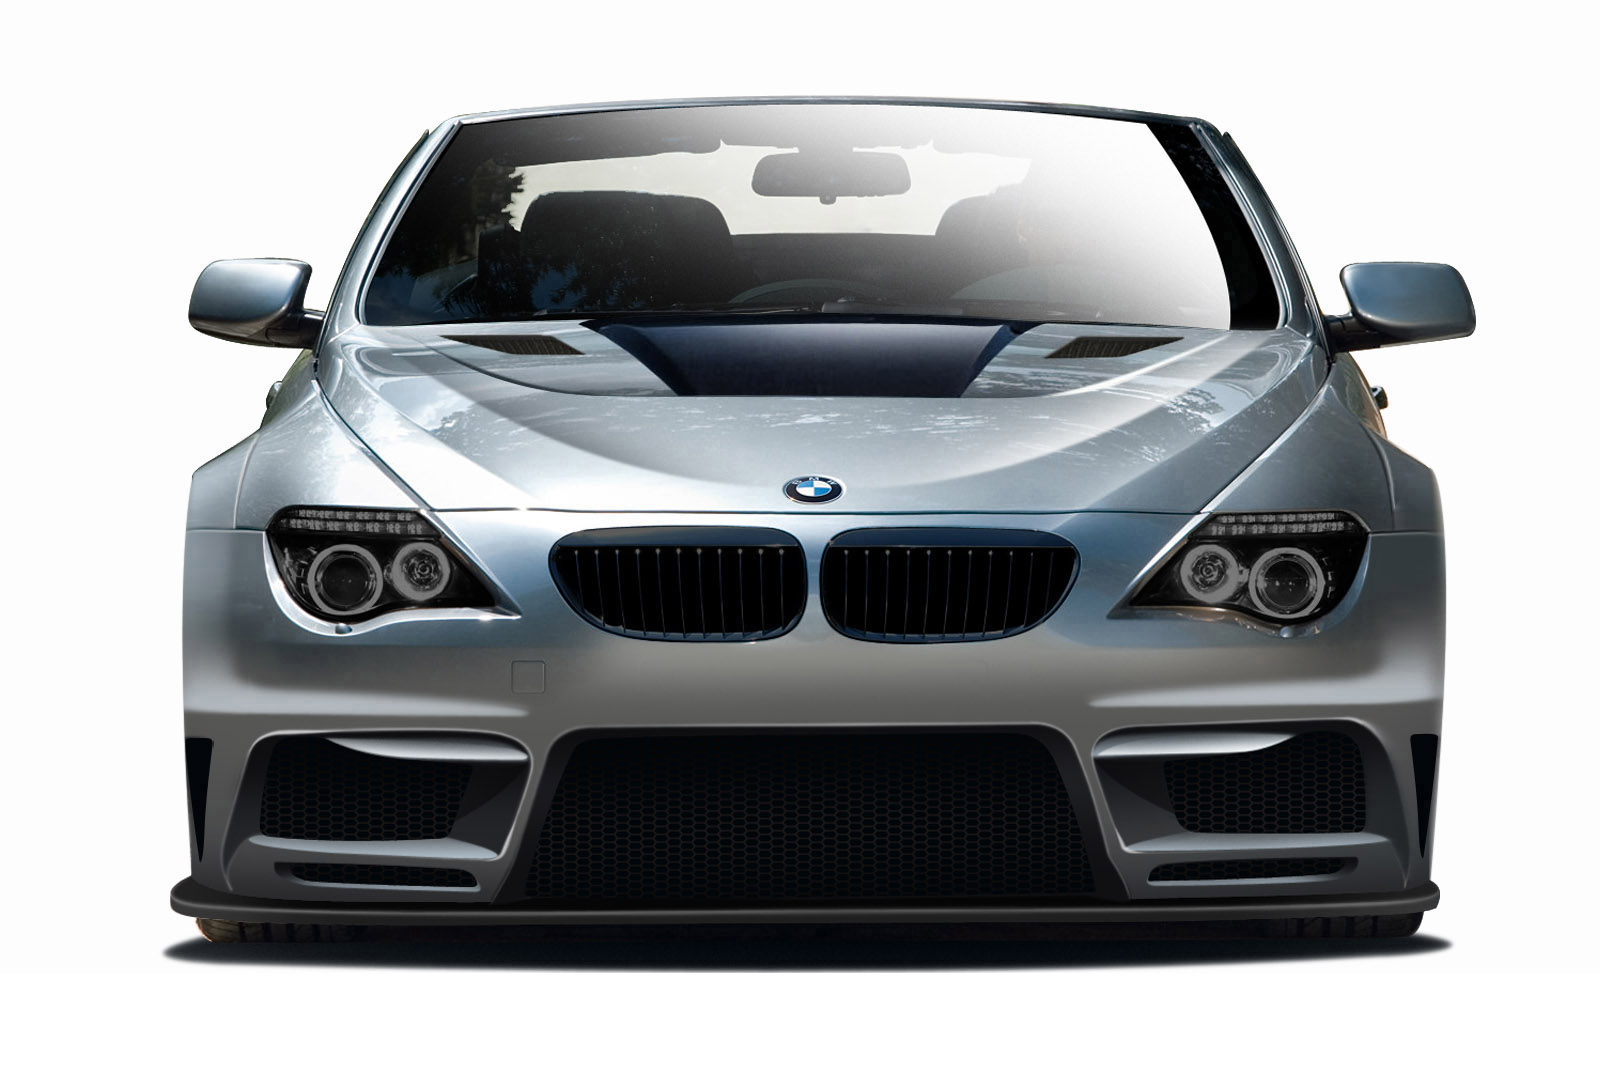 2004-2010 BMW 6 Series E63 E64 2DR Convertible AF-2 Wide Body Front Bumper Cover ( GFK ) - 1 Piece